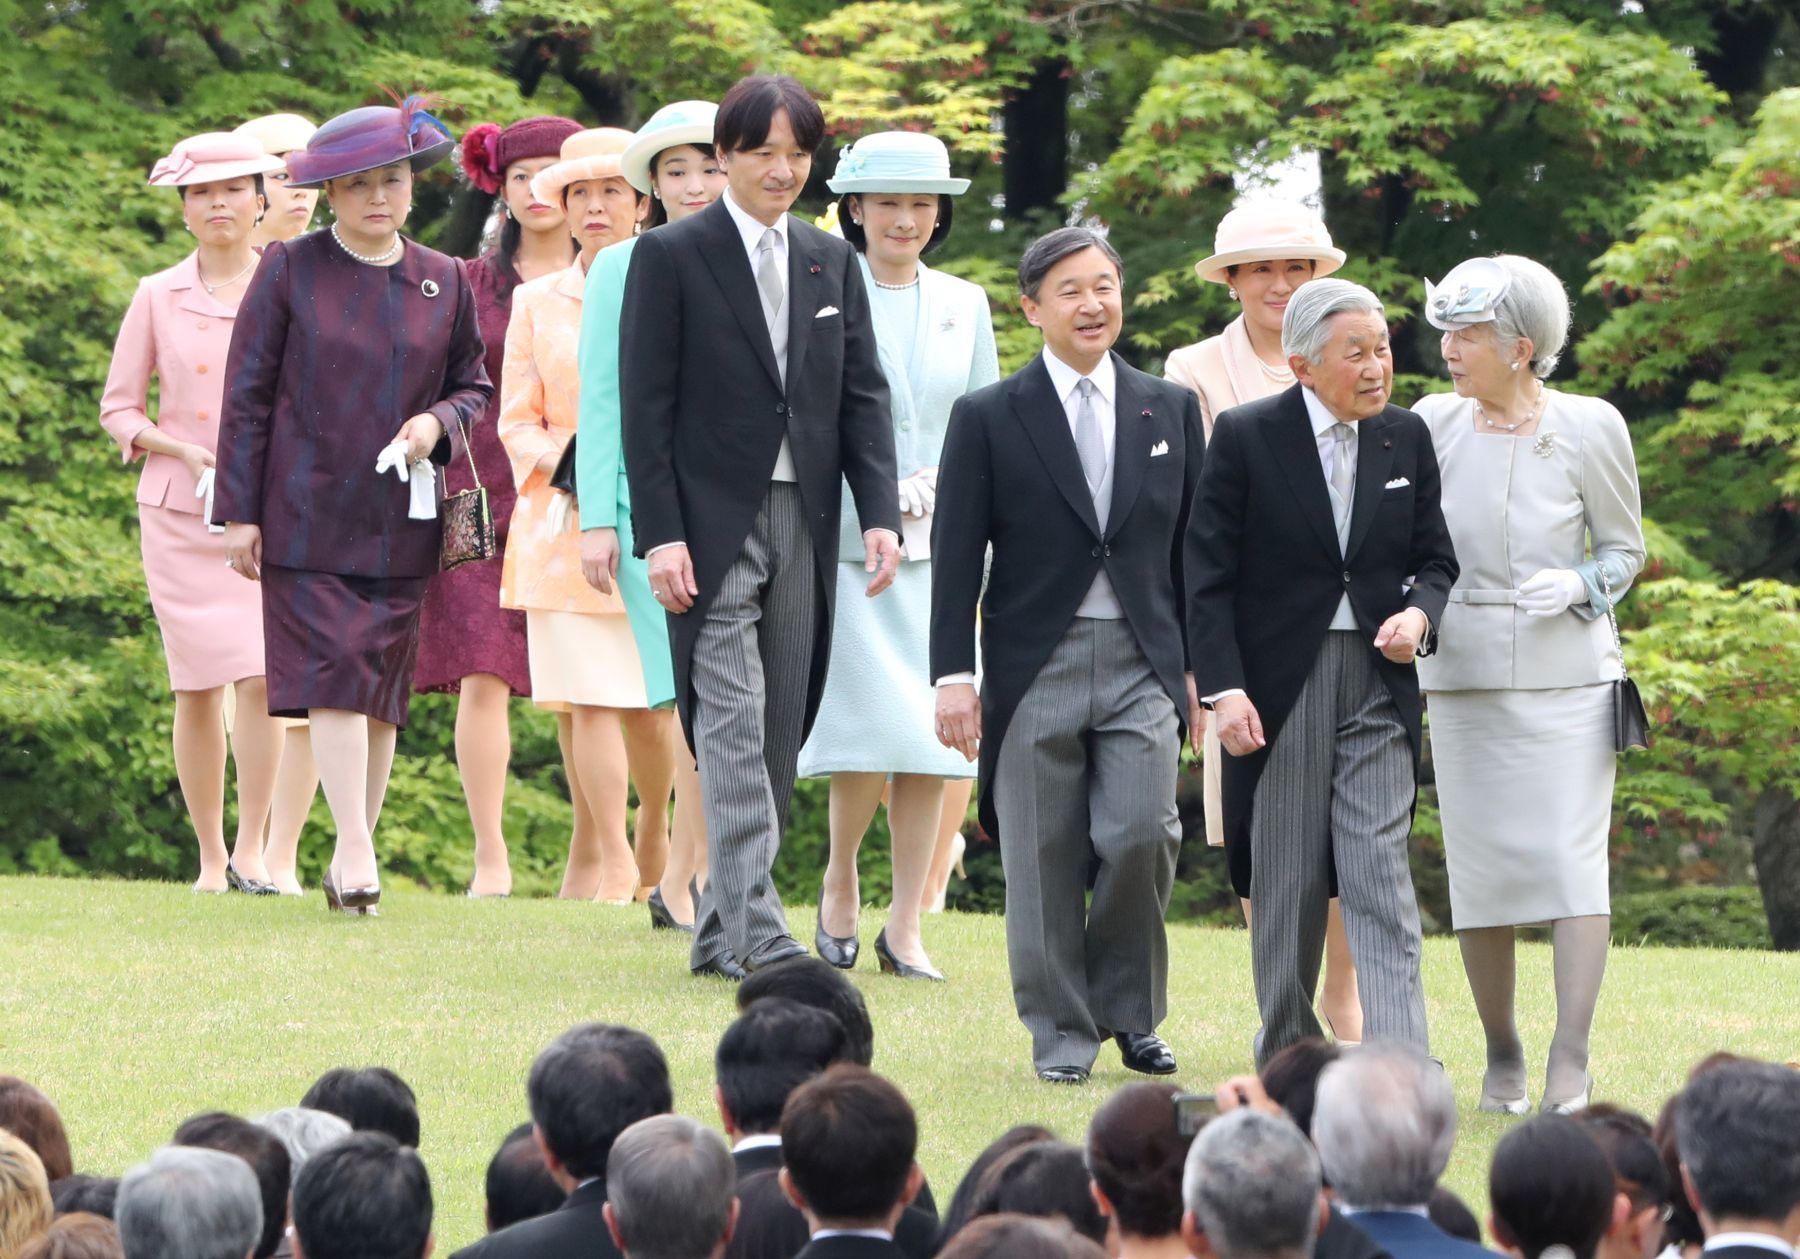 The Japanese Emperors Role in the 21st Century